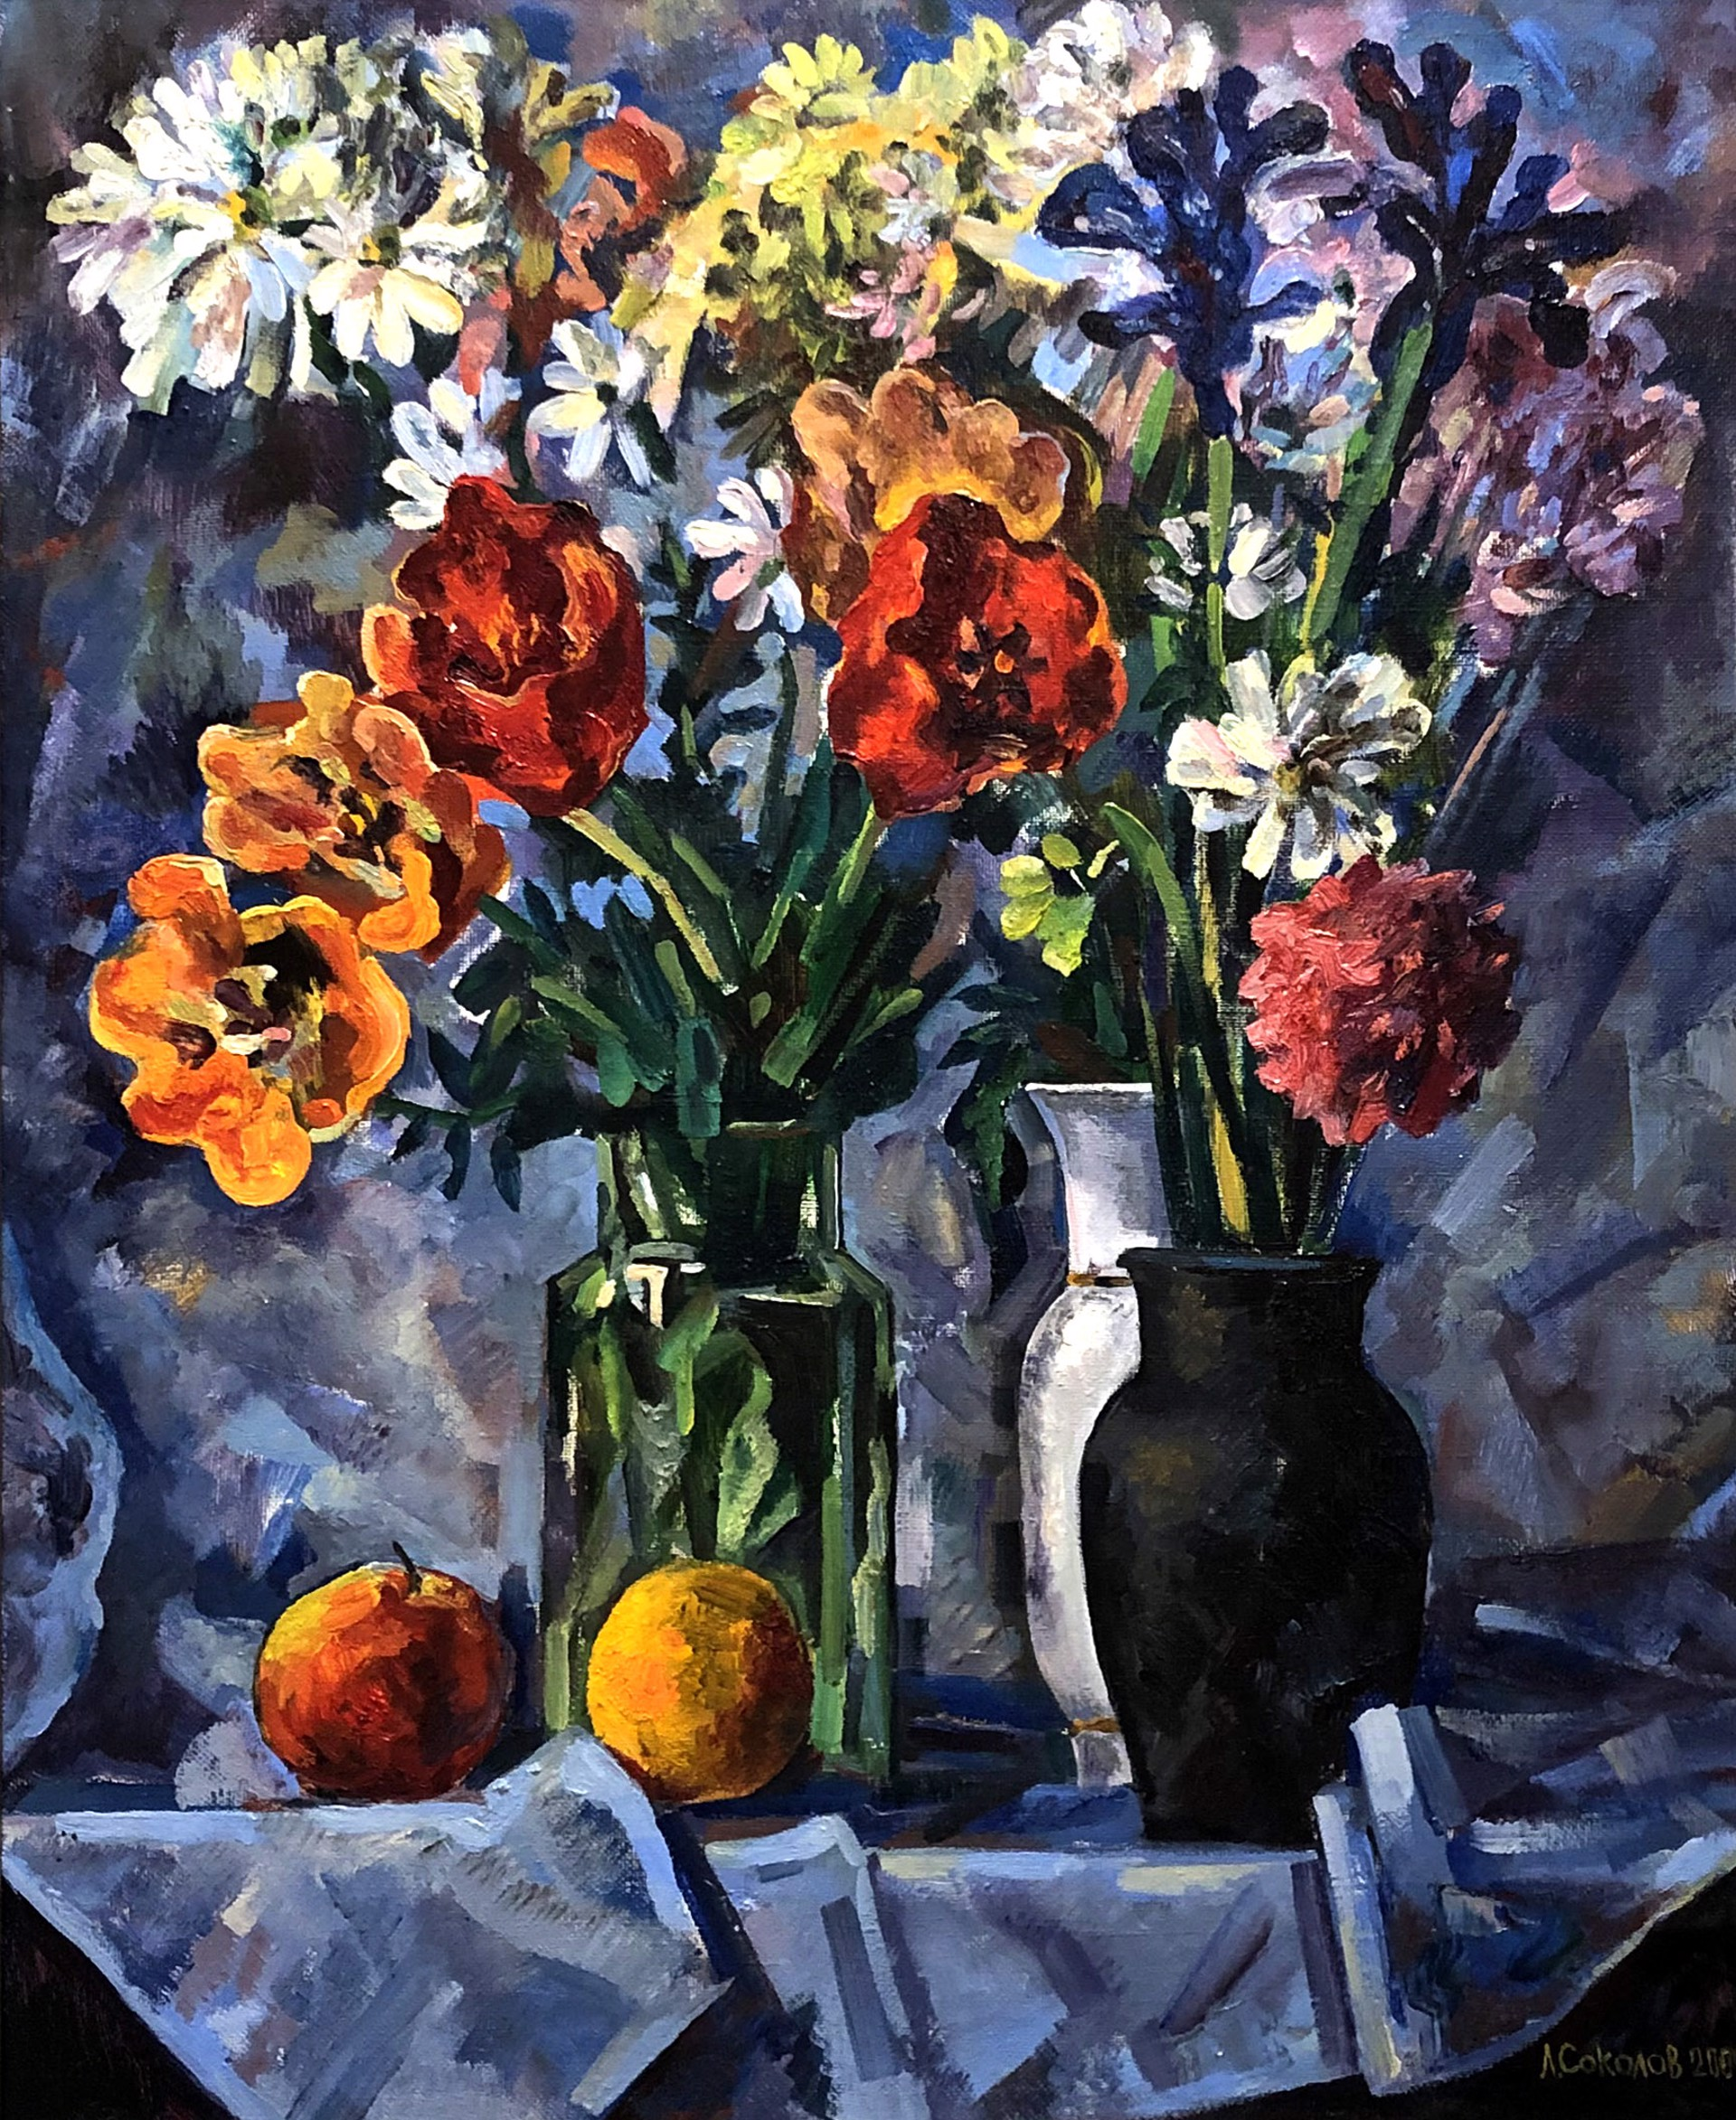 Leonid Alekseevich Sokolov - Flowers in a Vase by Russian Artists